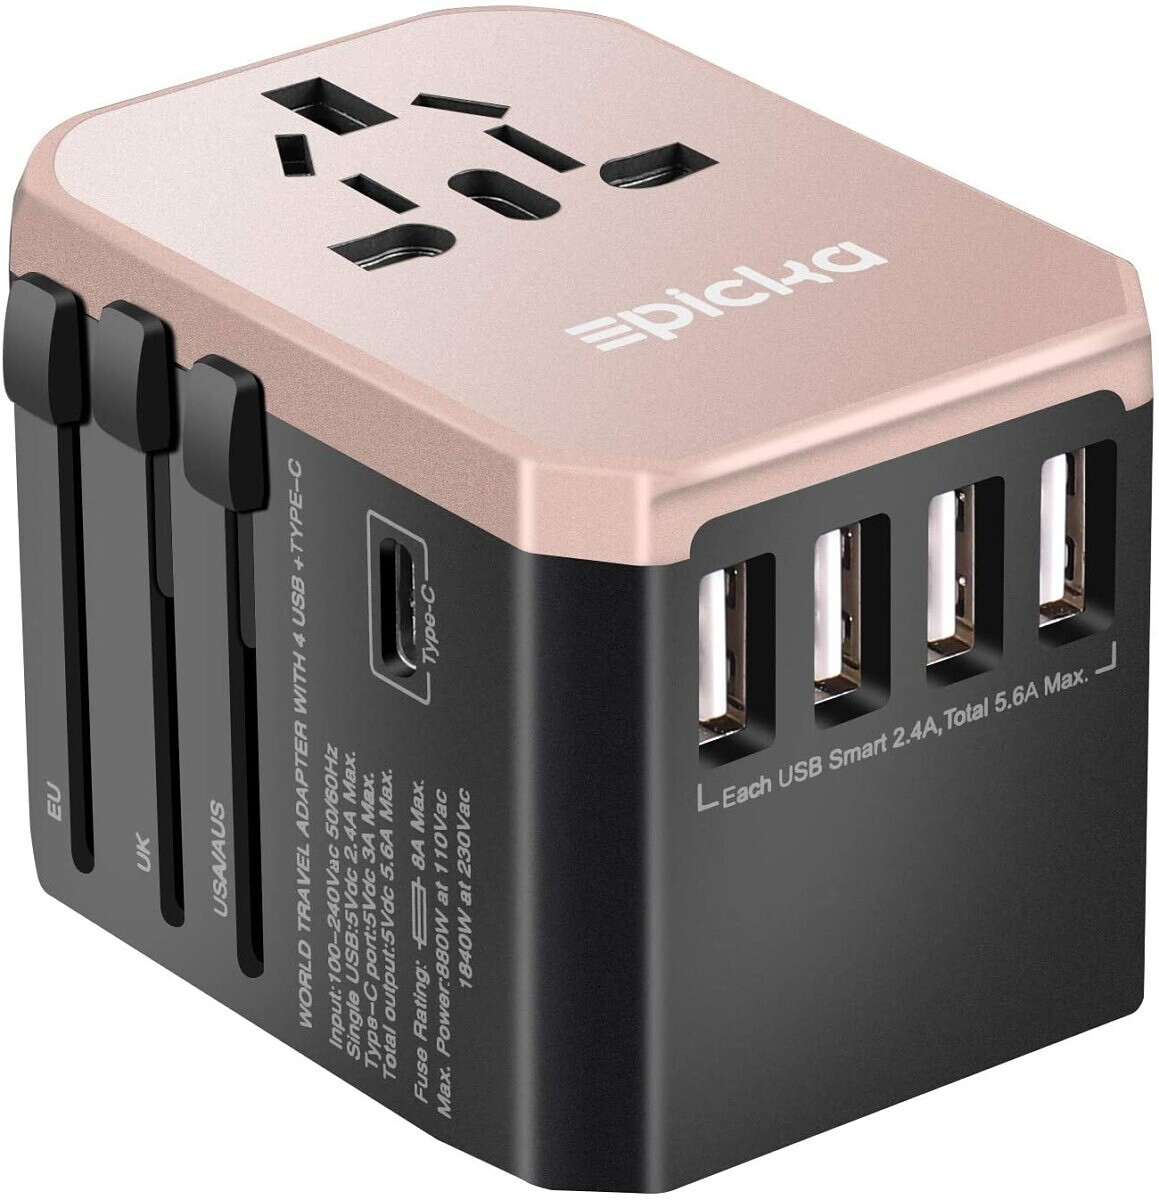 PICKA All in One Worldwide Wall Charger